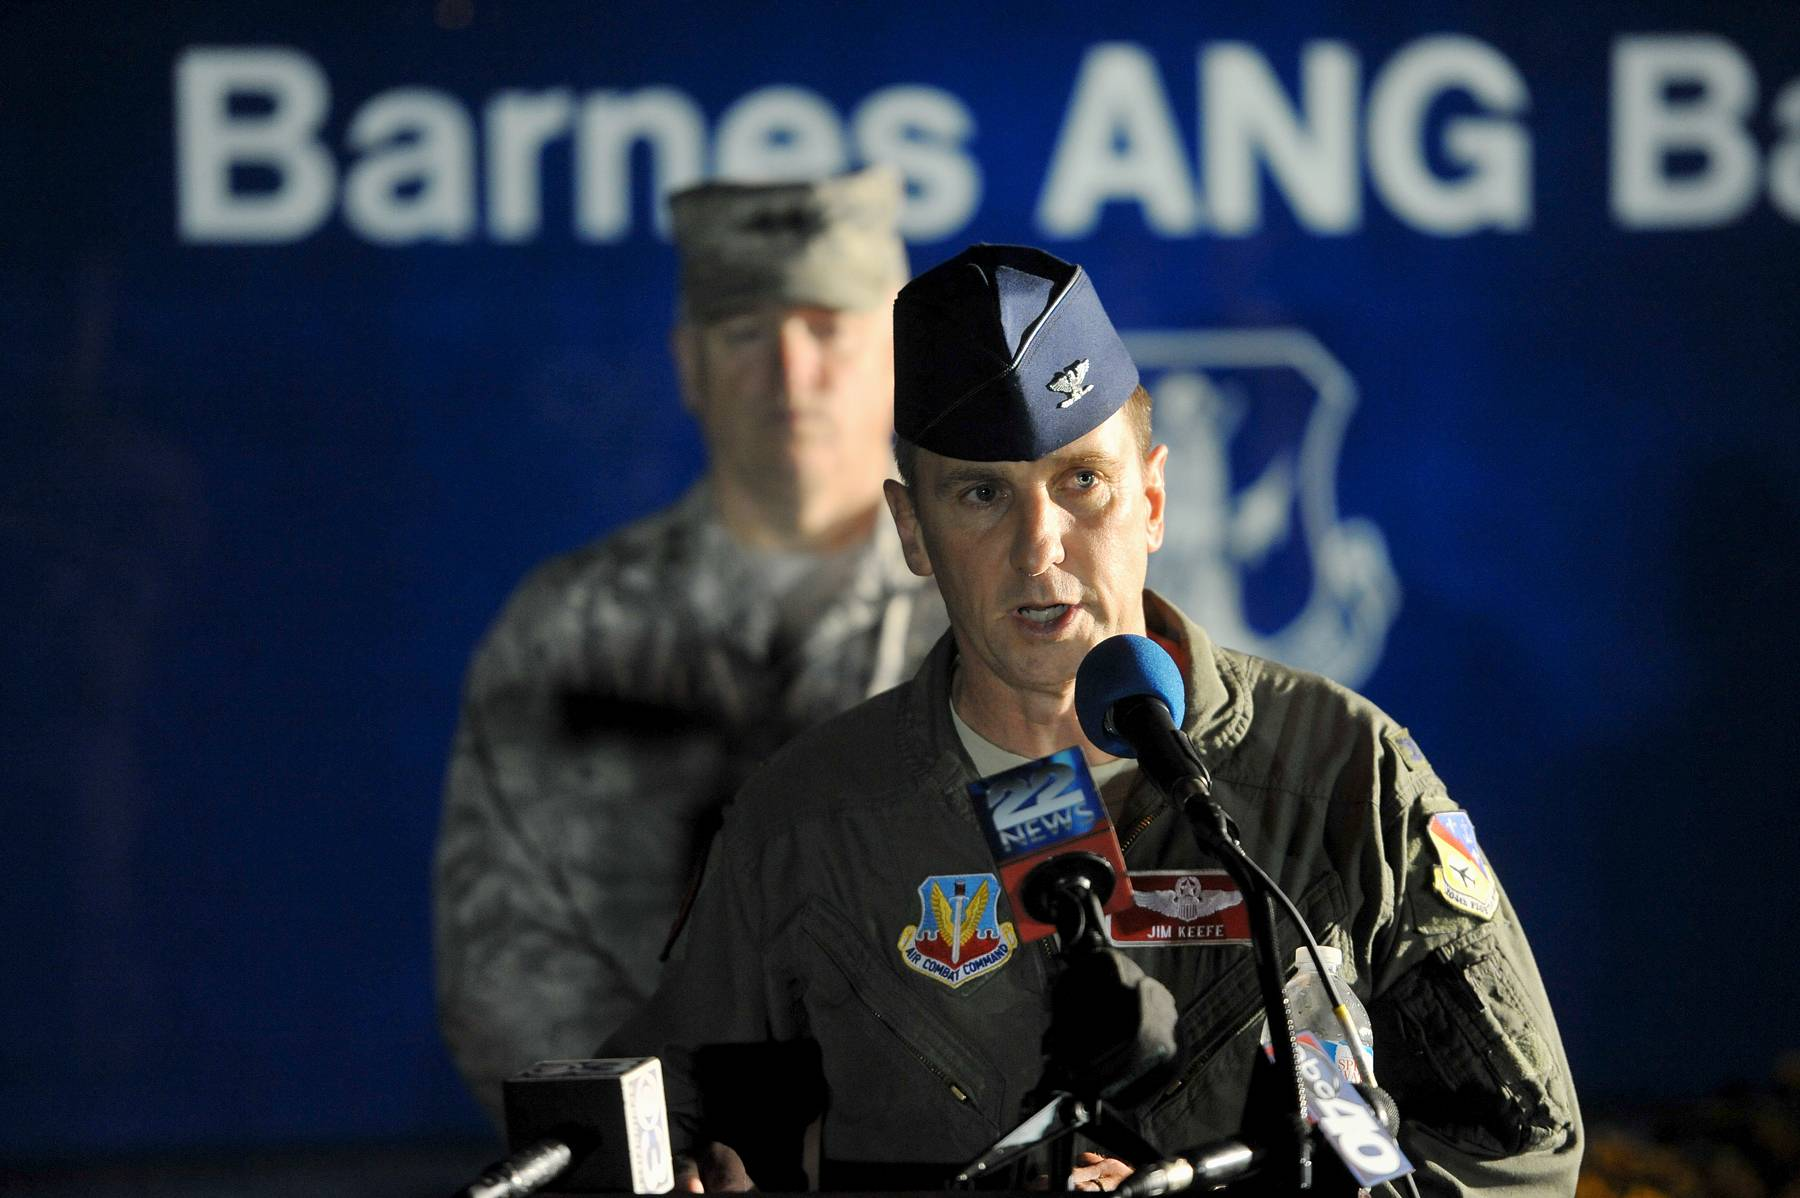 Col. James Keefe, commander of the 104th Fighter Wing of the Massachusetts Air National guard announces Thursday evening Aug. 28, 2014 the missing F-15C pilot remains have been found in the plane wreckage.